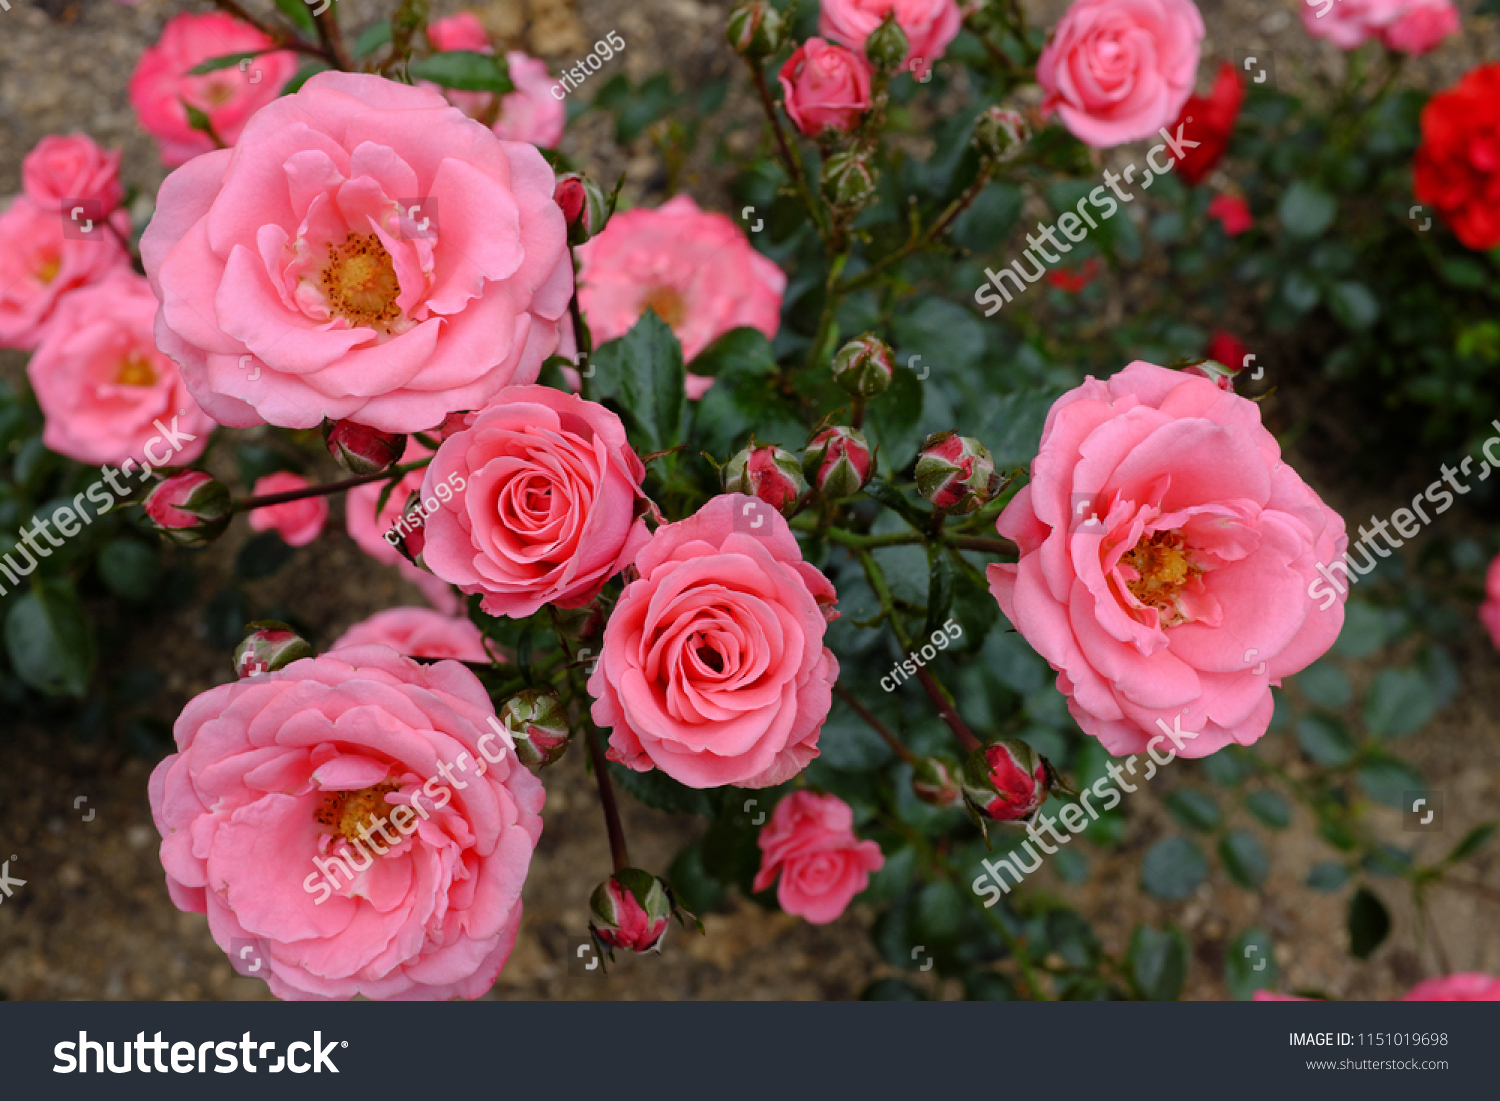 Bella Rosa Bella Rosa Rose 2018 Stock Photo Edit Now 1151019698 Shutterstock